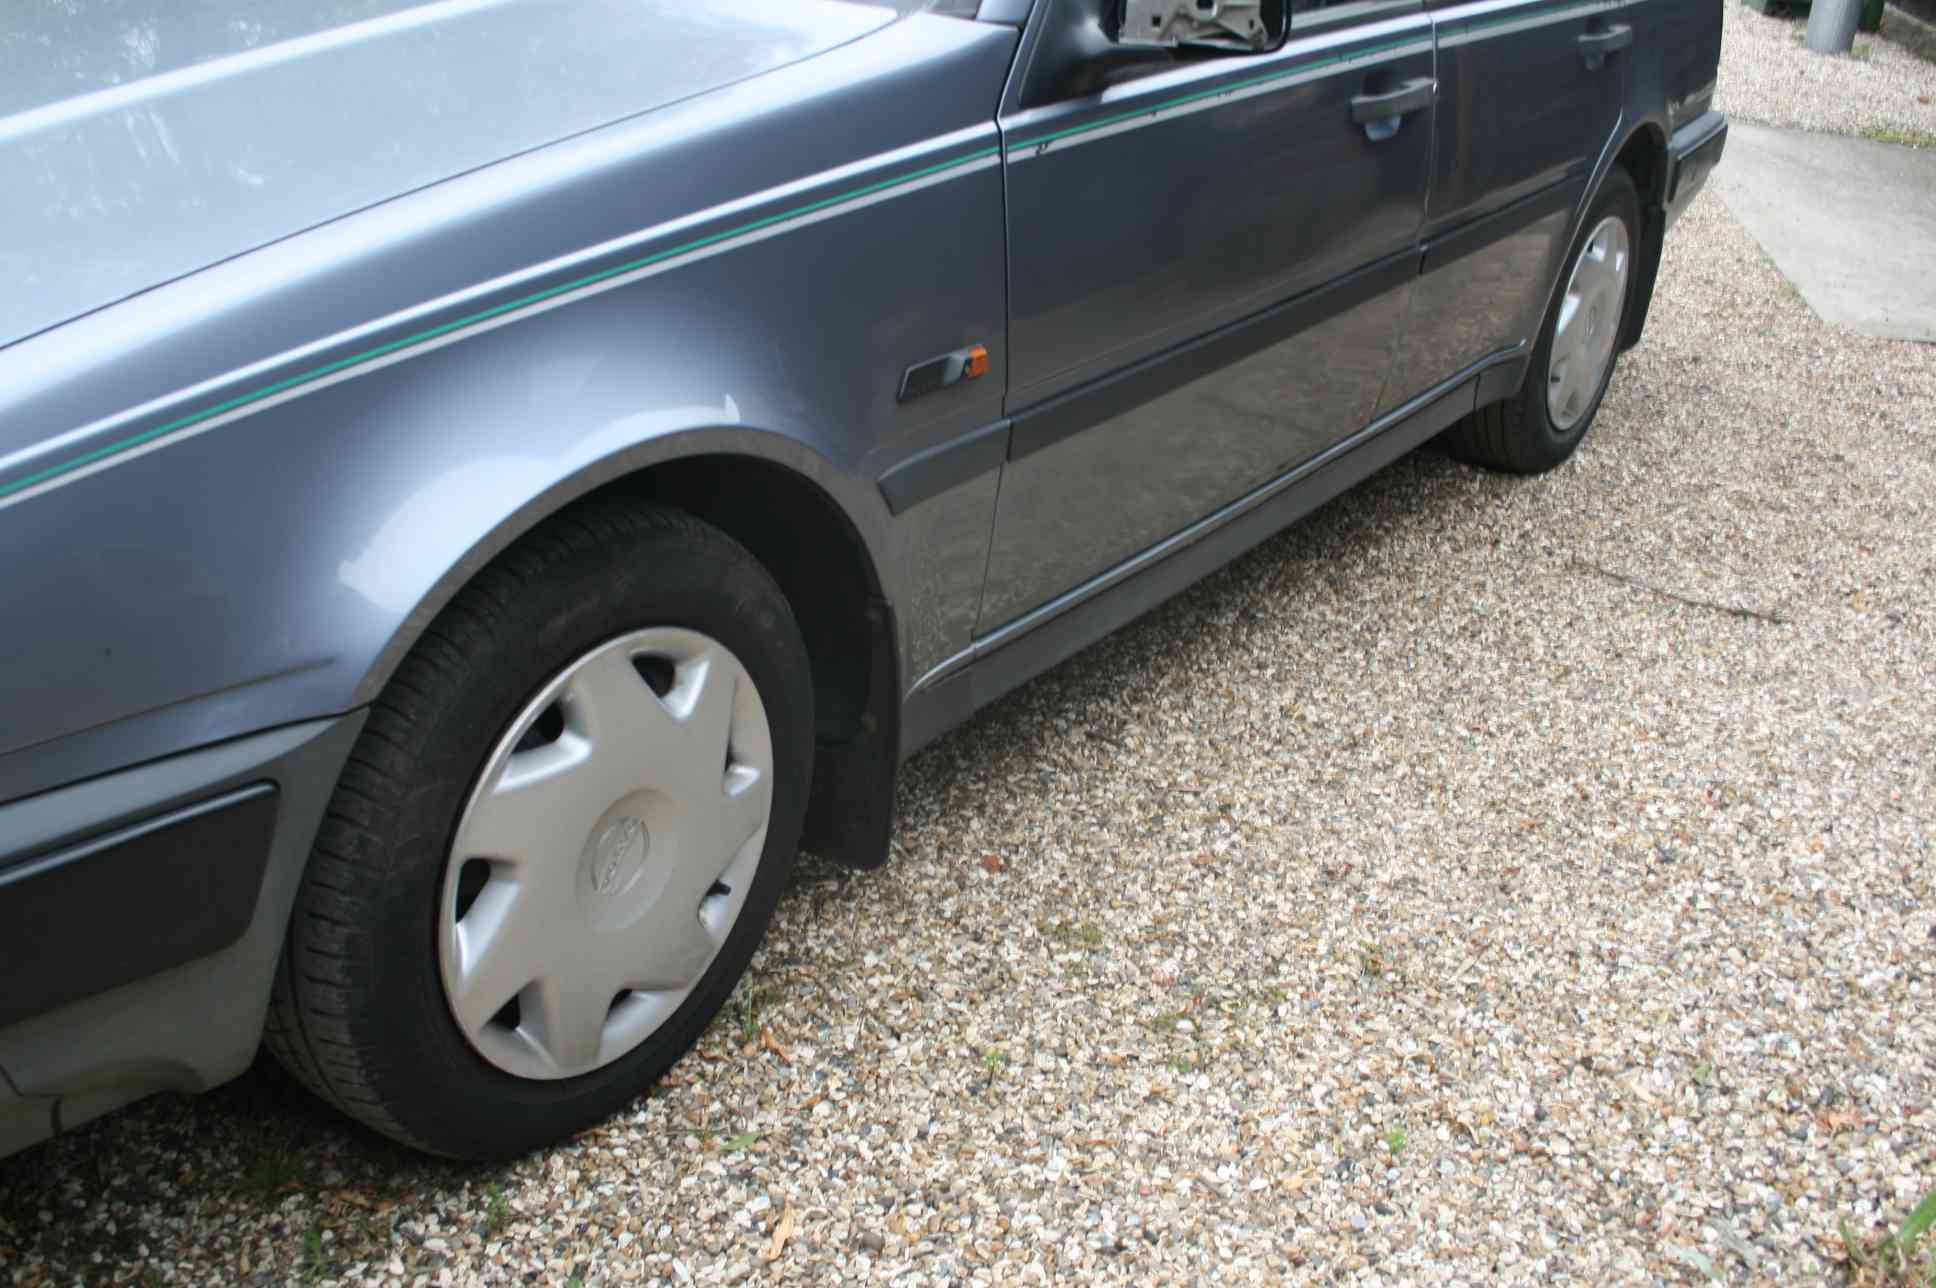 VOLVO 440 xi  5 Door Hatchback £1000